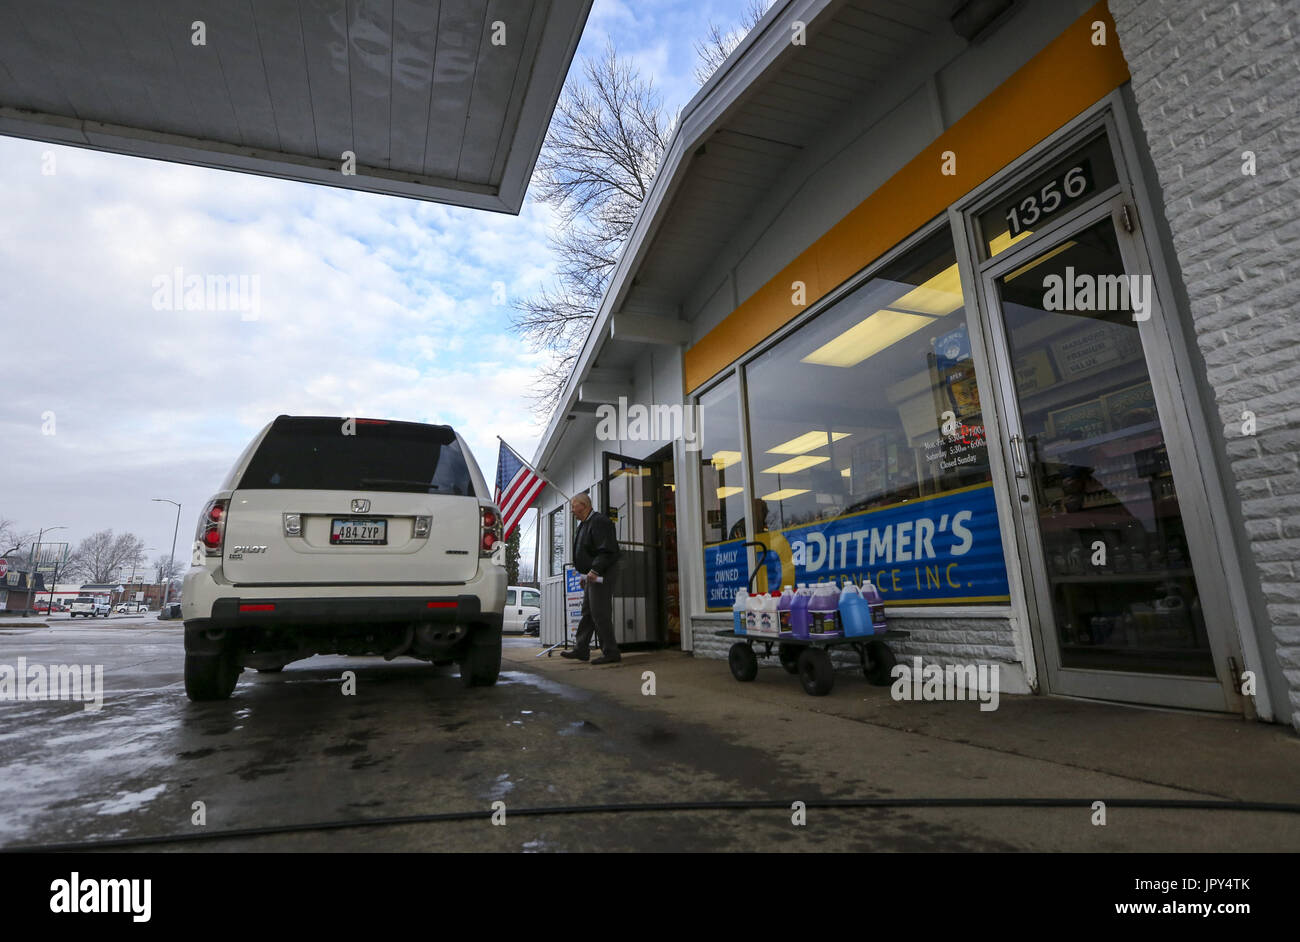 Davenport, Iowa, USA. 19th Jan, 2017. Jim Clauson of Davenport walks out to his car after the oil is changed at Dittmer's Service in Davenport on Thursday, January 19, 2017. In January of 2016, the family owned full-service gas station parted ways with Shell Oil Company. The four-pump station lost its big oil affiliation this when the Dittmer brothers refused to conform to the multinational oil and gasoline company's expectations. Credit: Andy Abeyta/Quad-City Times/ZUMA Wire/Alamy Live News - Stock Image